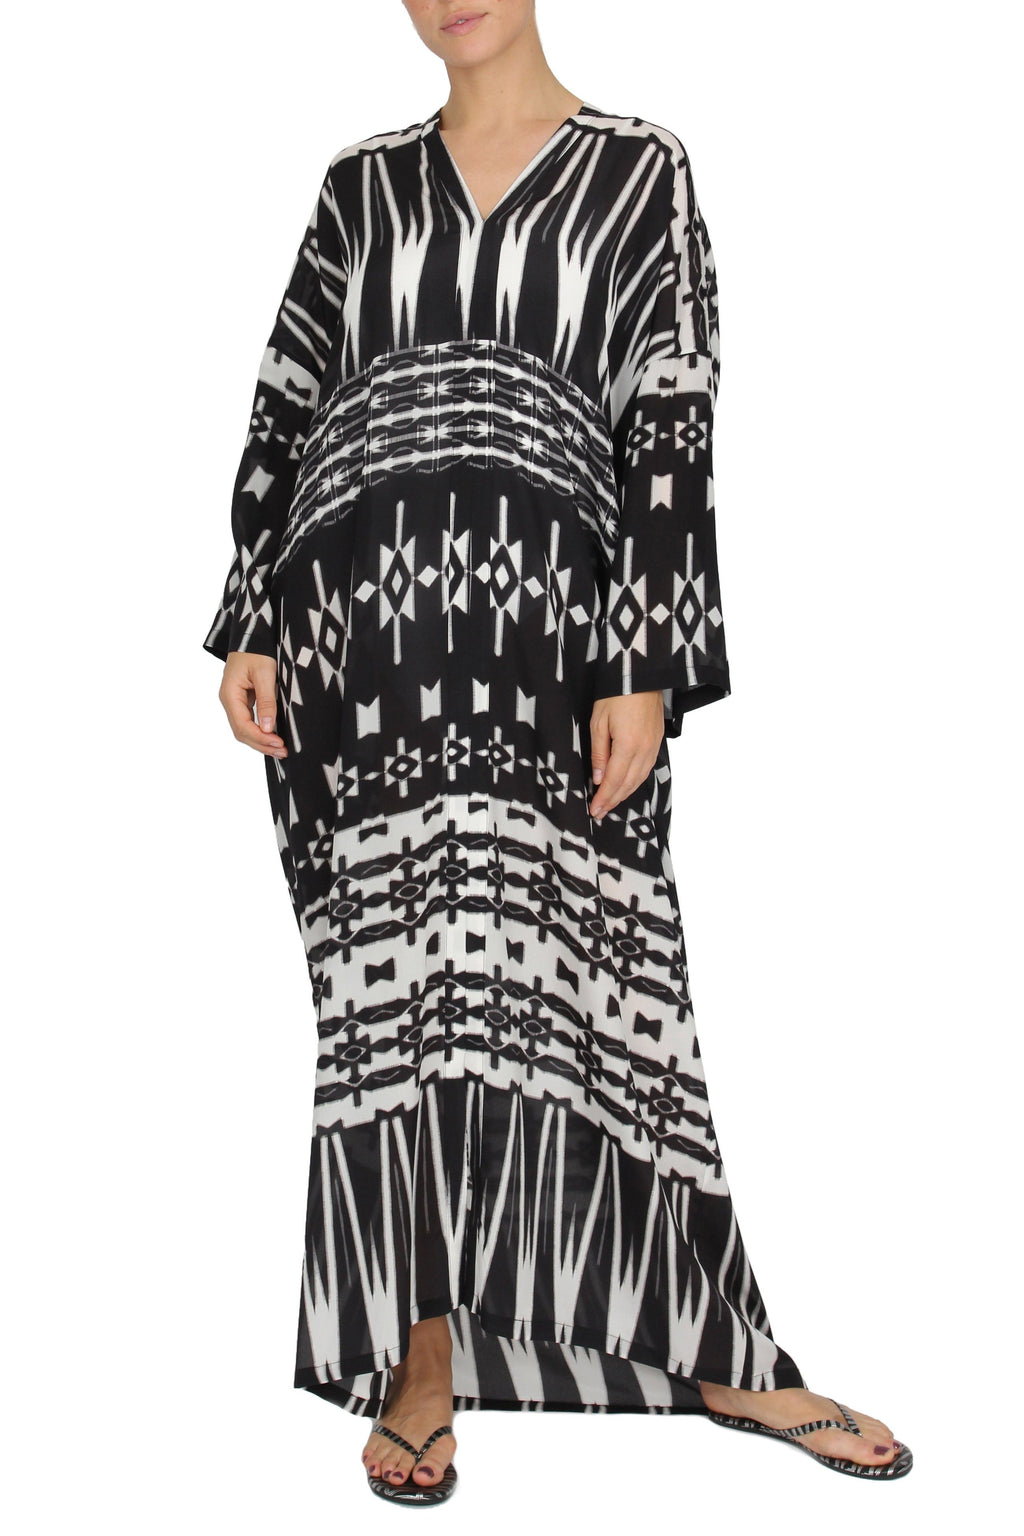 Ethnic Printed Sleeve Boubou Marie France Van Damme One Size New Ethnic